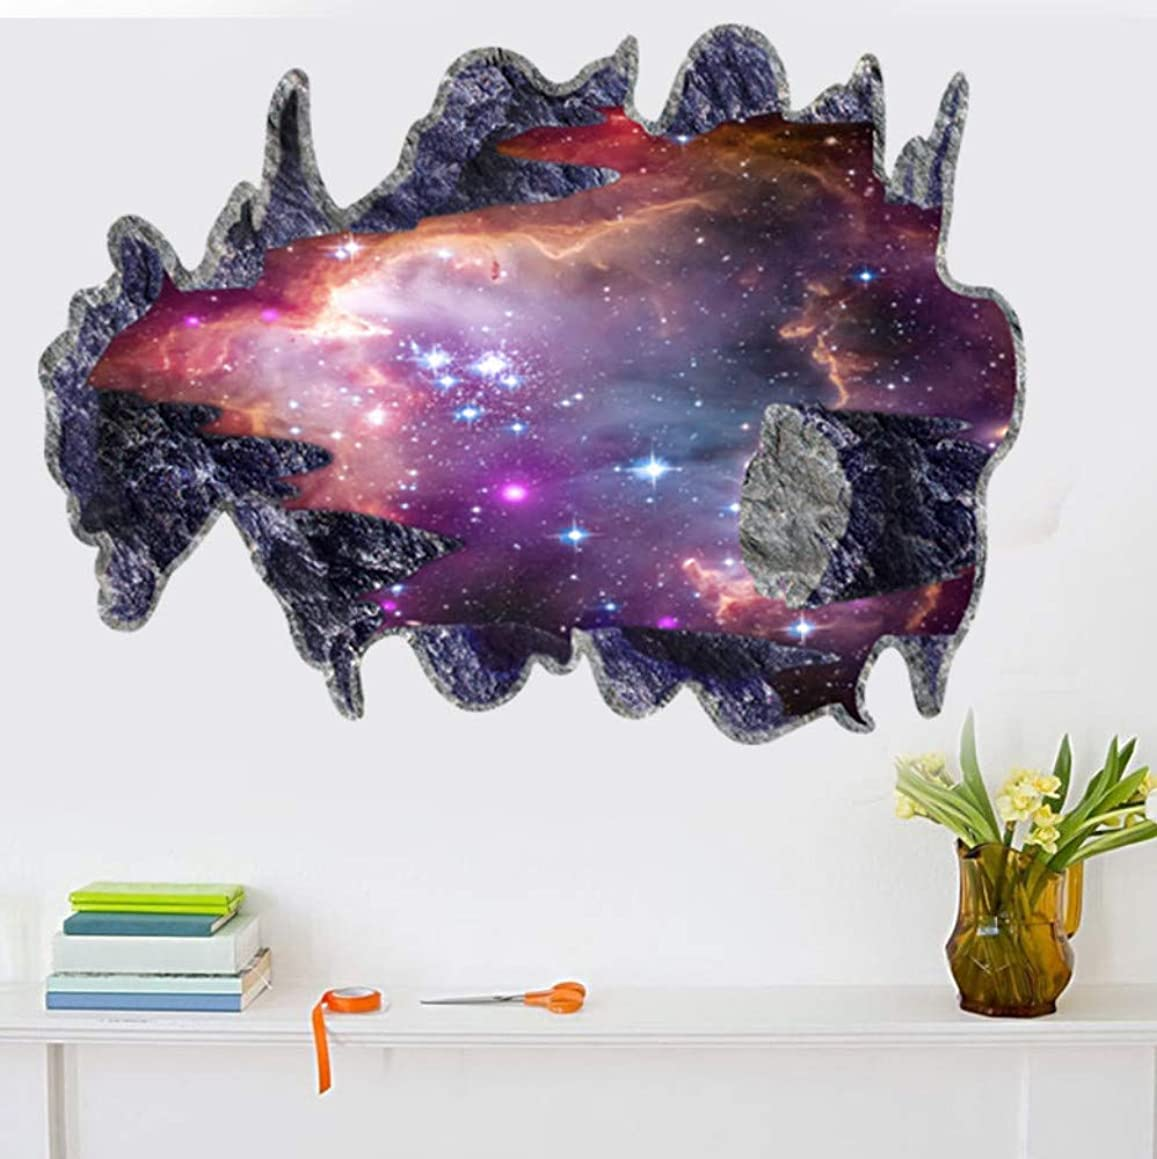 Msszff 3D Space Galaxy Meteorites Wall Stickers for Sitting Room Planet Boys Bedroom Art Vinyl 3D Wall Stickers Decal